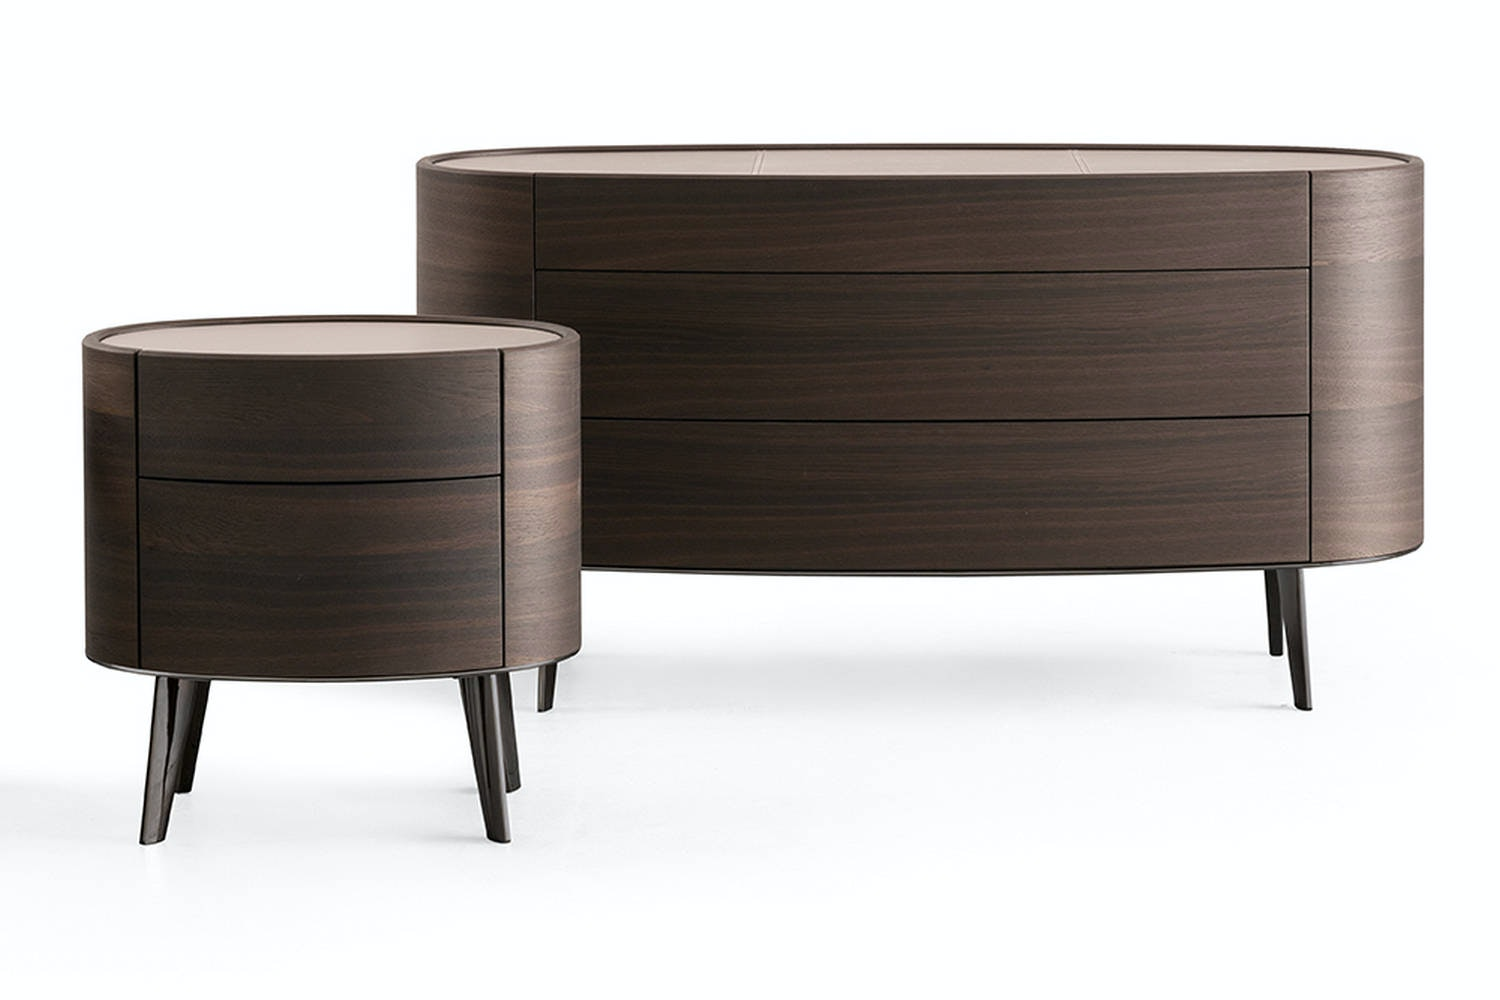 Kelly Chest of Drawers by Emmanuel Gallina for Poliform